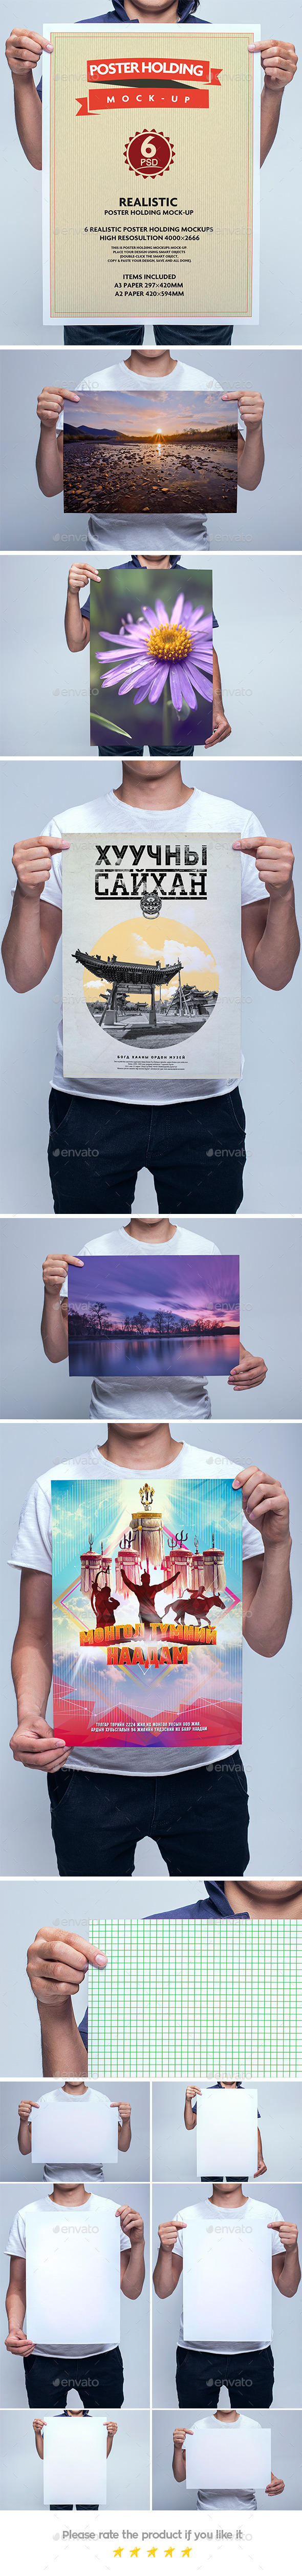 Realistic Poster Holding Mock-Up - Posters Print